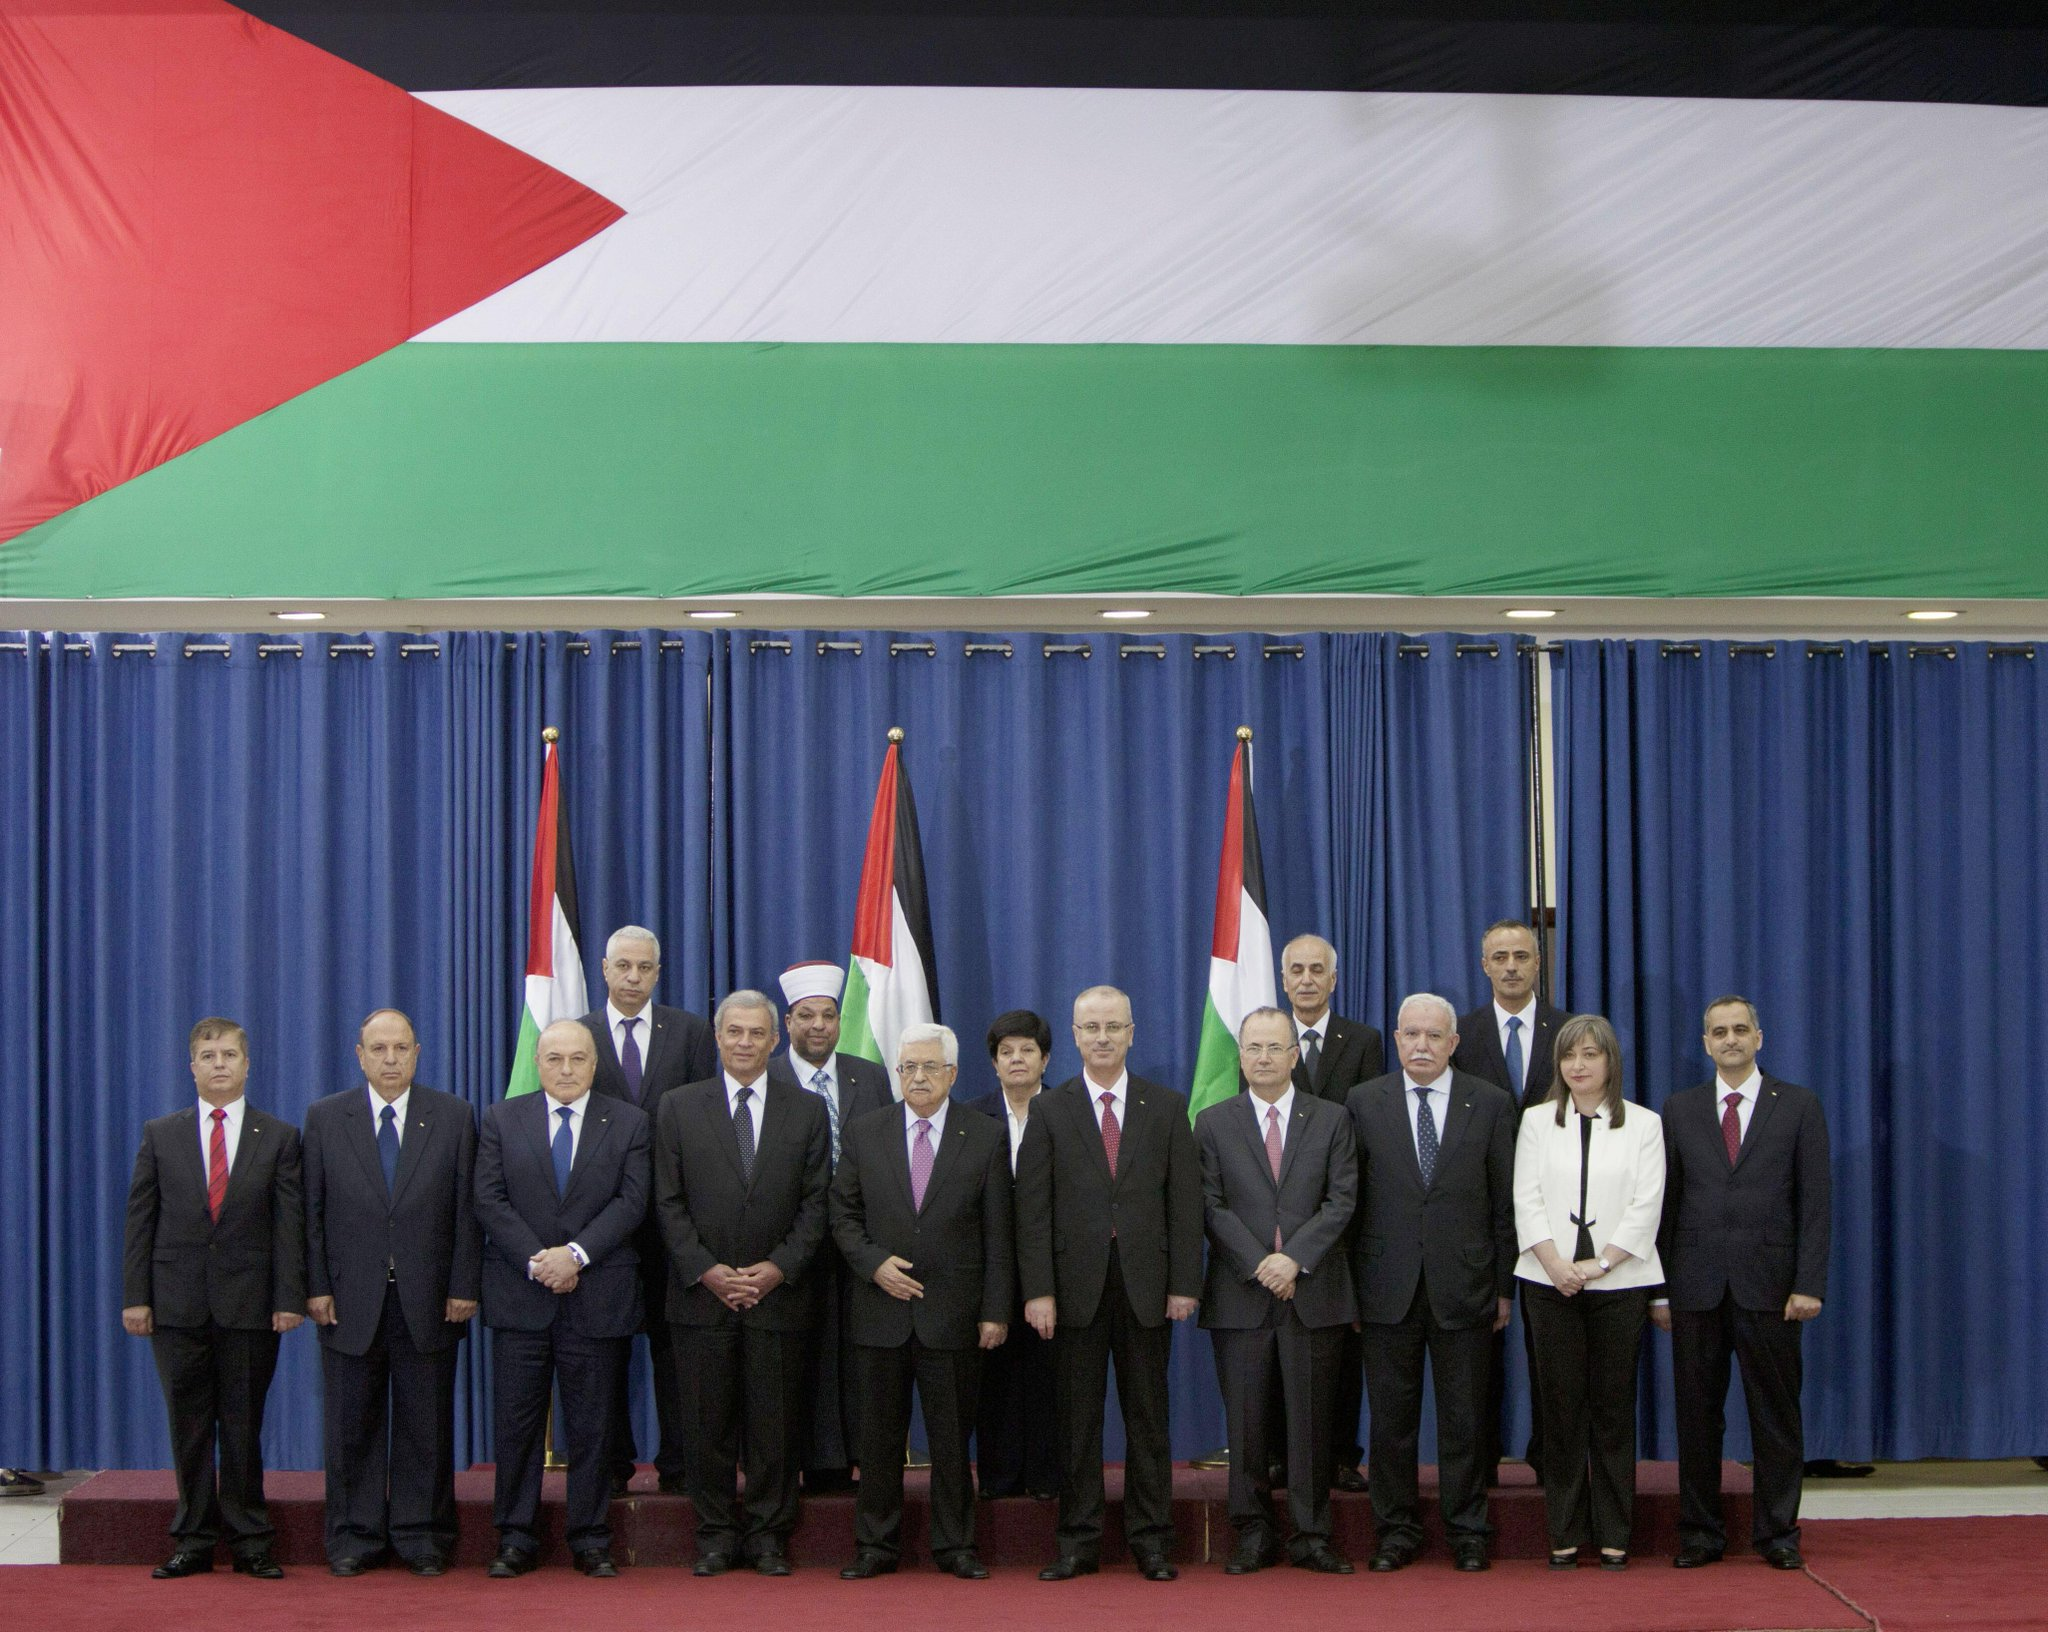 Group portrait of Palestinian President Mahmoud Abbas with the new Palestinian Government